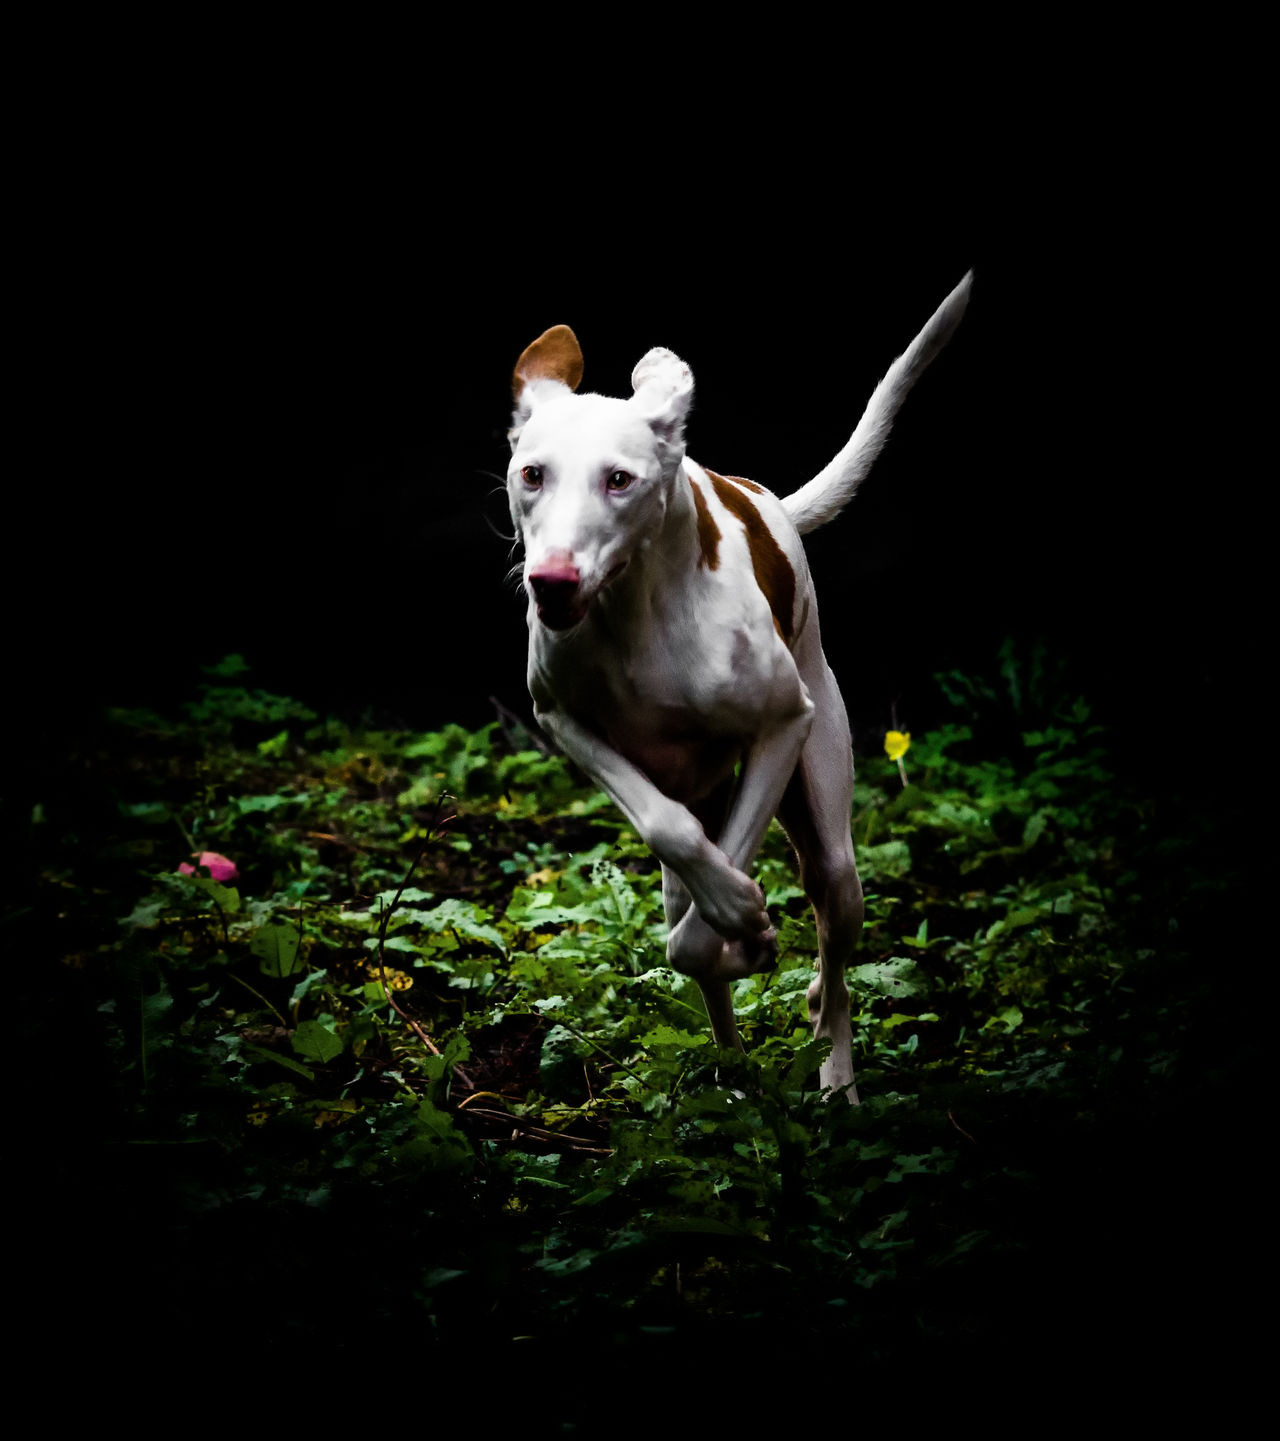 Podenco Ibicenco Animal Animal Themes Black Background Dog Domestic Animals Horizontal Ibizan Hound No People One Animal Pets Podenco Ibicenco